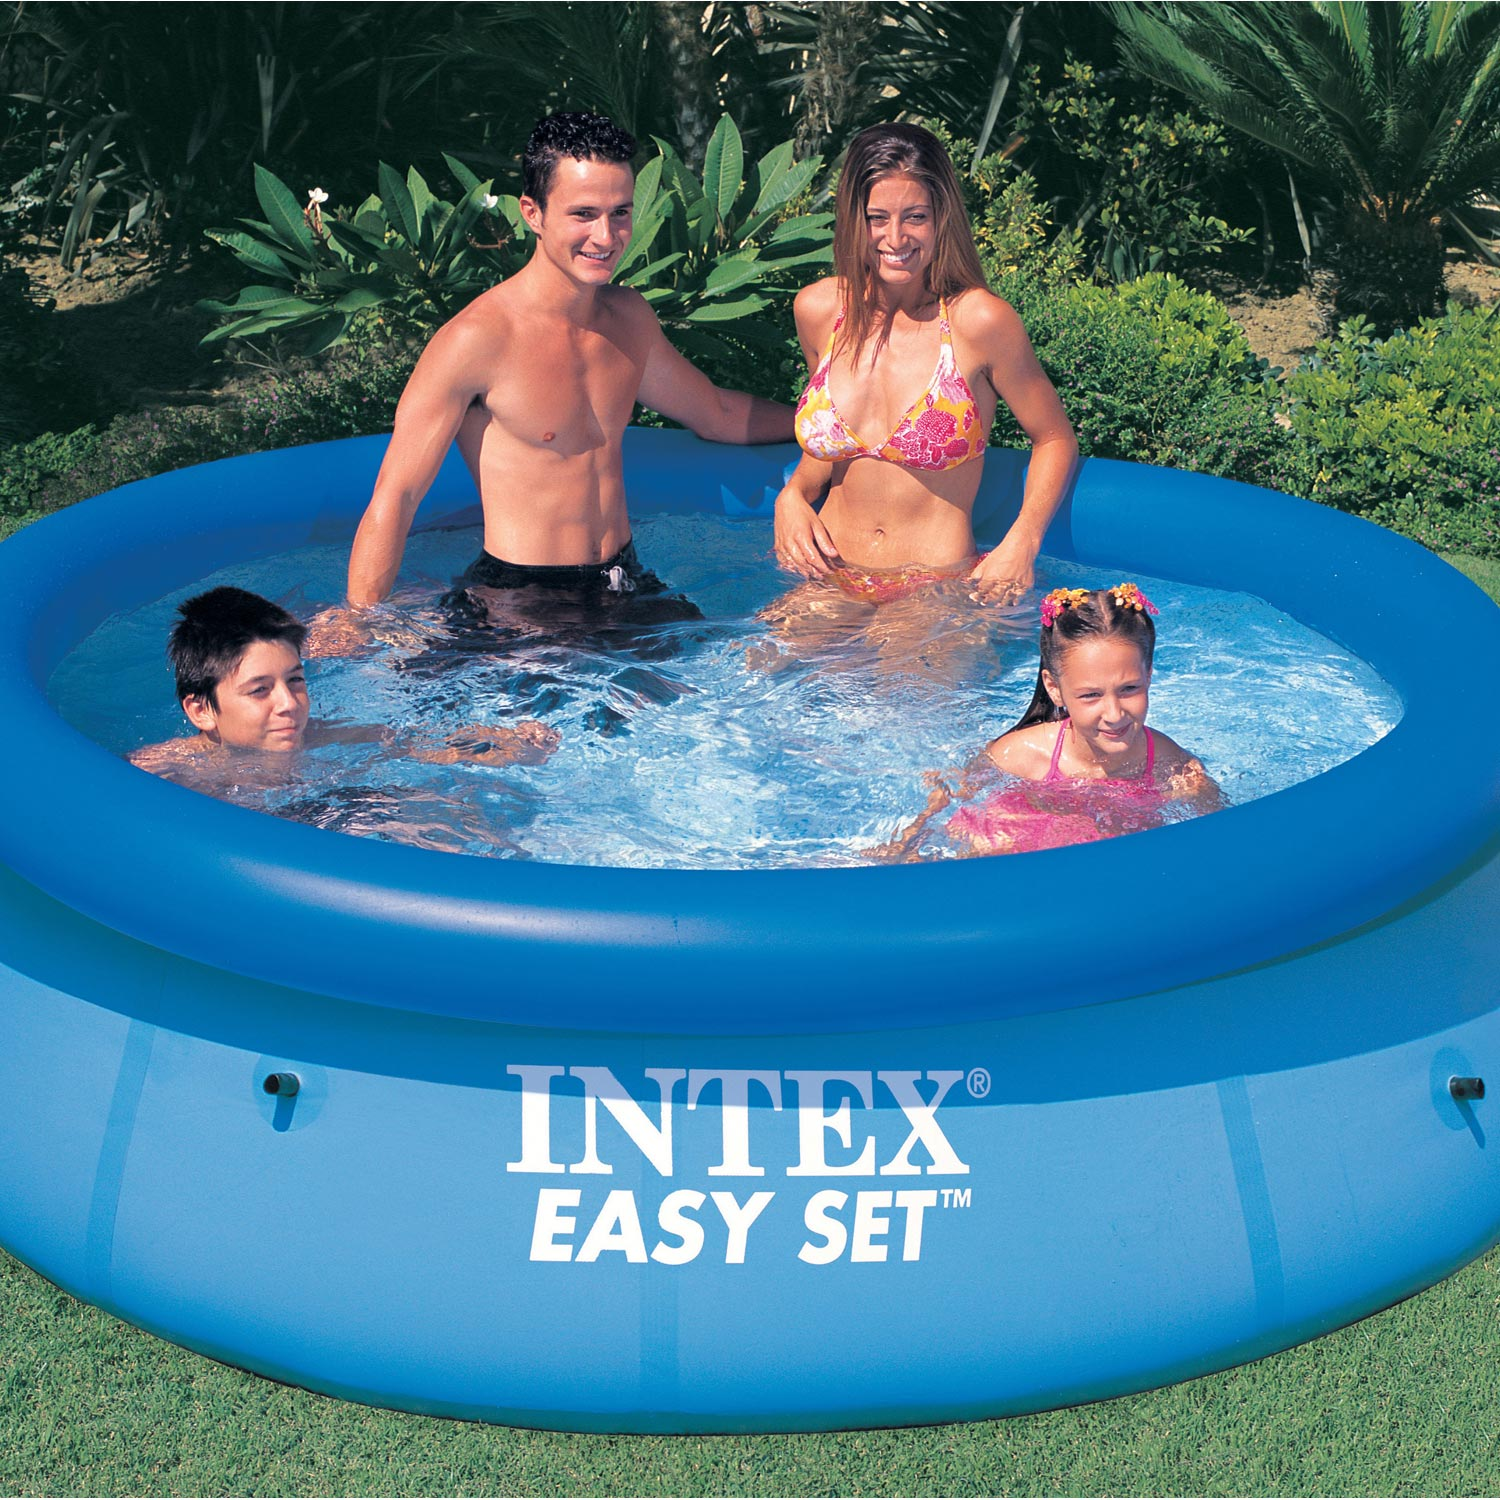 Piscine hors sol gonflable easy set clearview intex ronde for Piscine hors sol gonflable